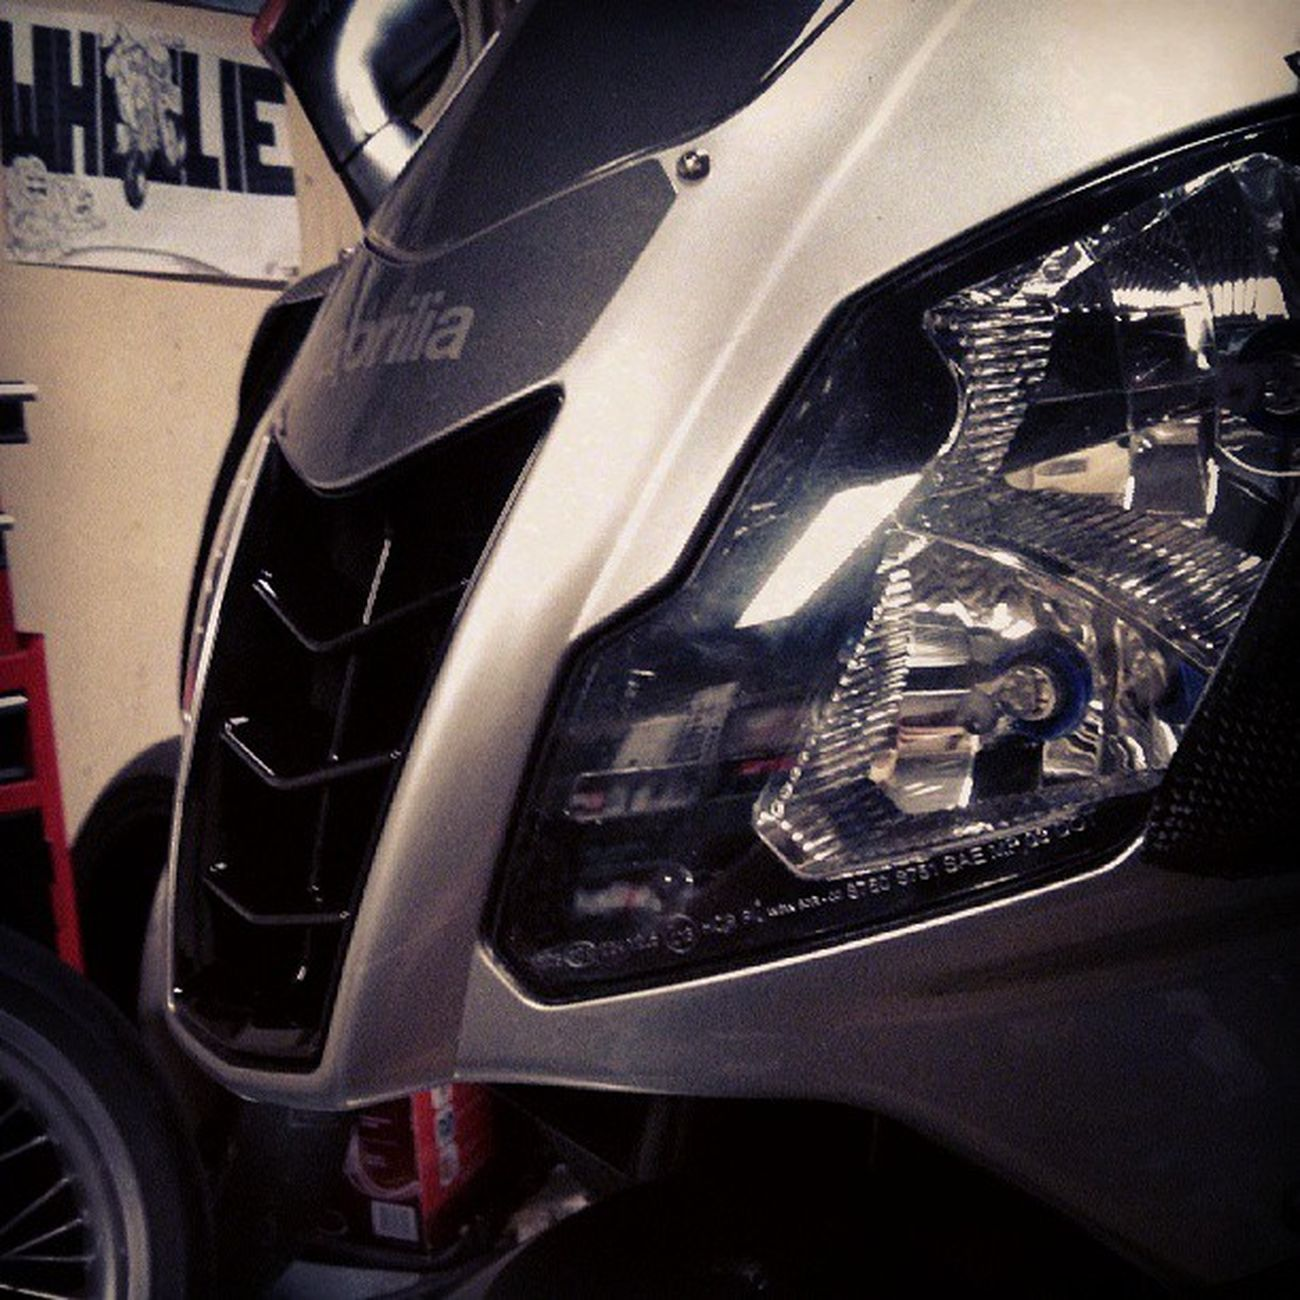 Rsvr Rsv Aprilia New nose carbon